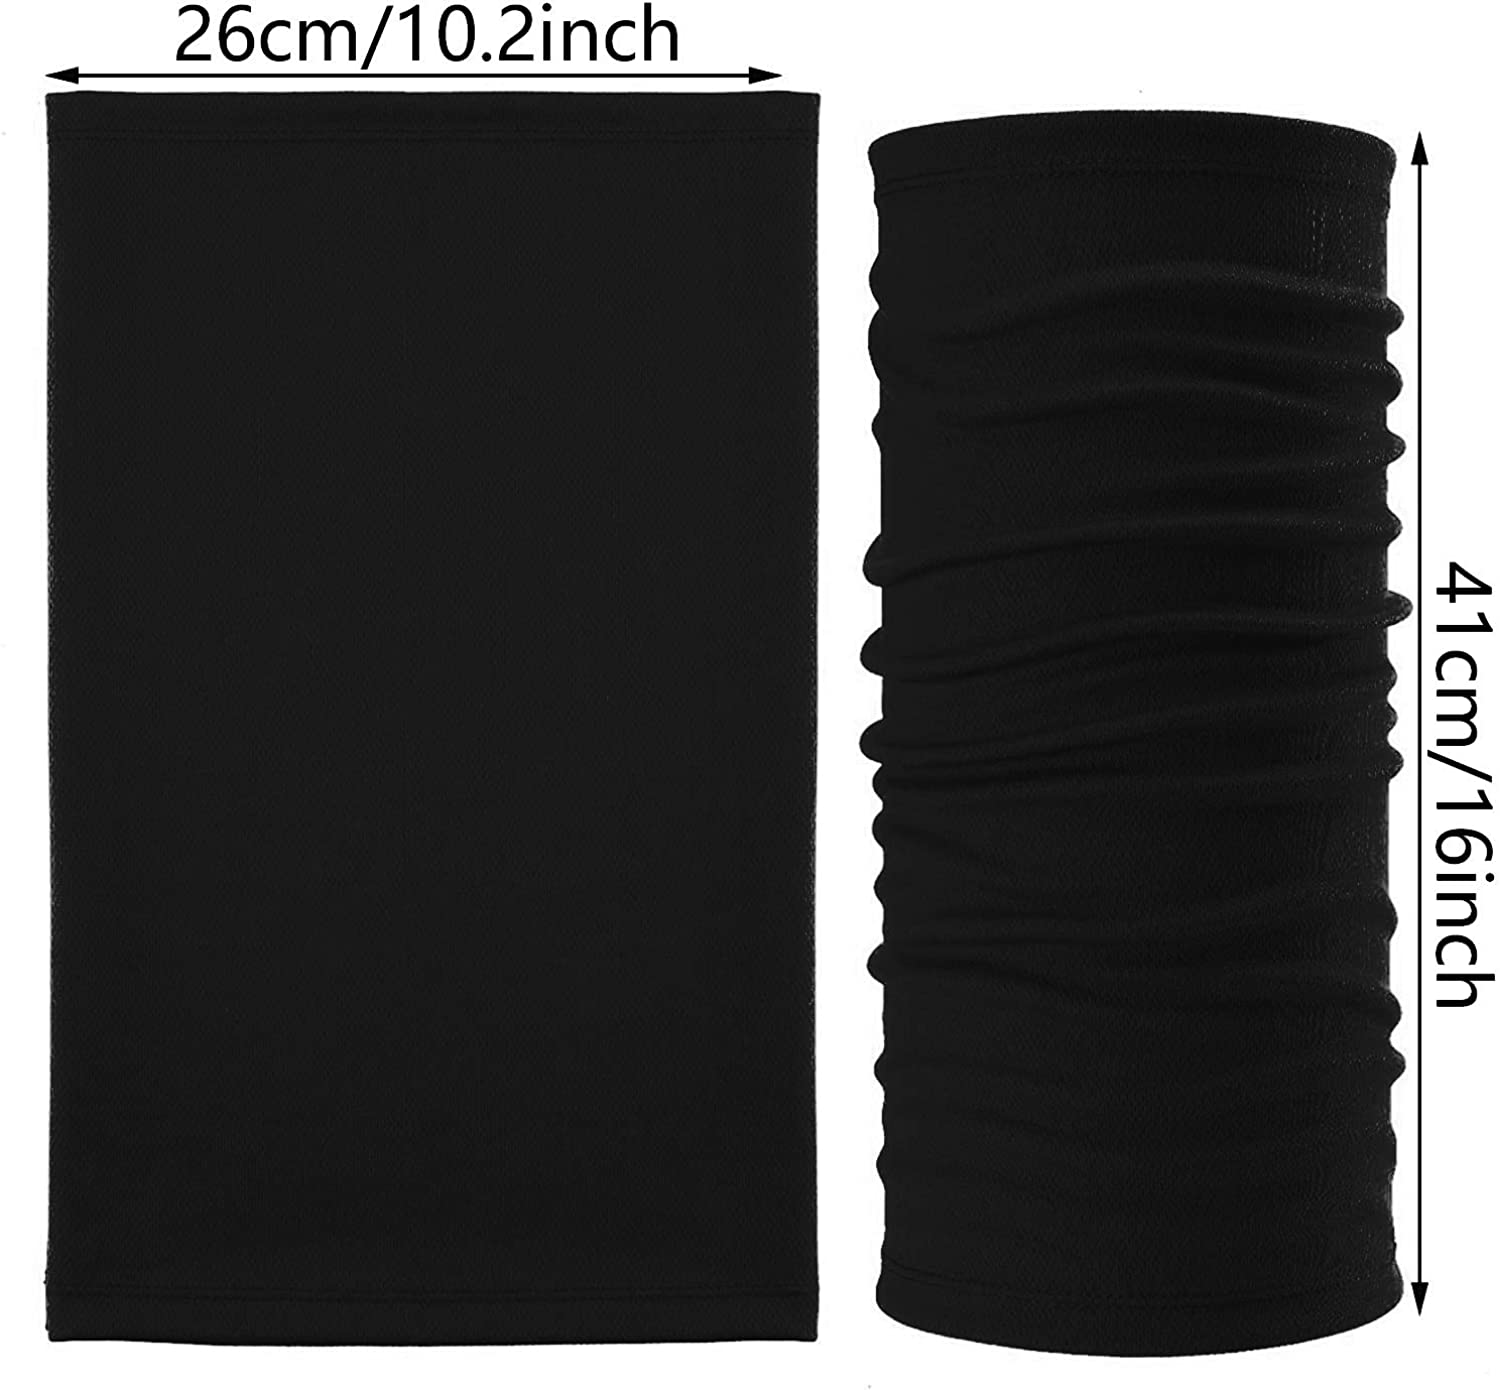 Neck Gaiters Balaclavas - Breathable Sports Scarves for Outdoor Activities Sun Protection for Cycling Running Fishing